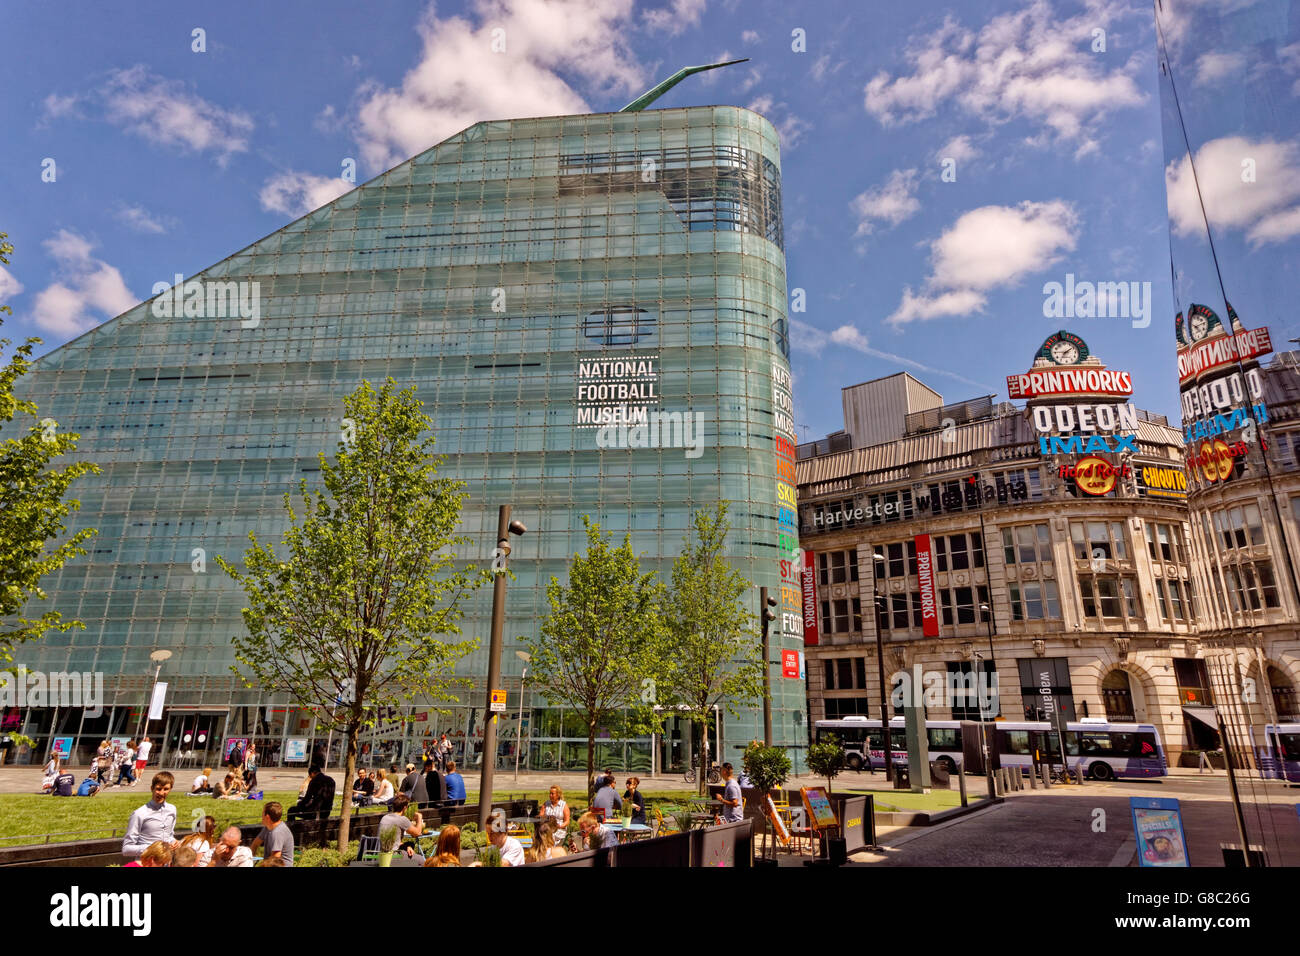 The UK National Football Museum in Manchester City centre, England, UK. - Stock Image